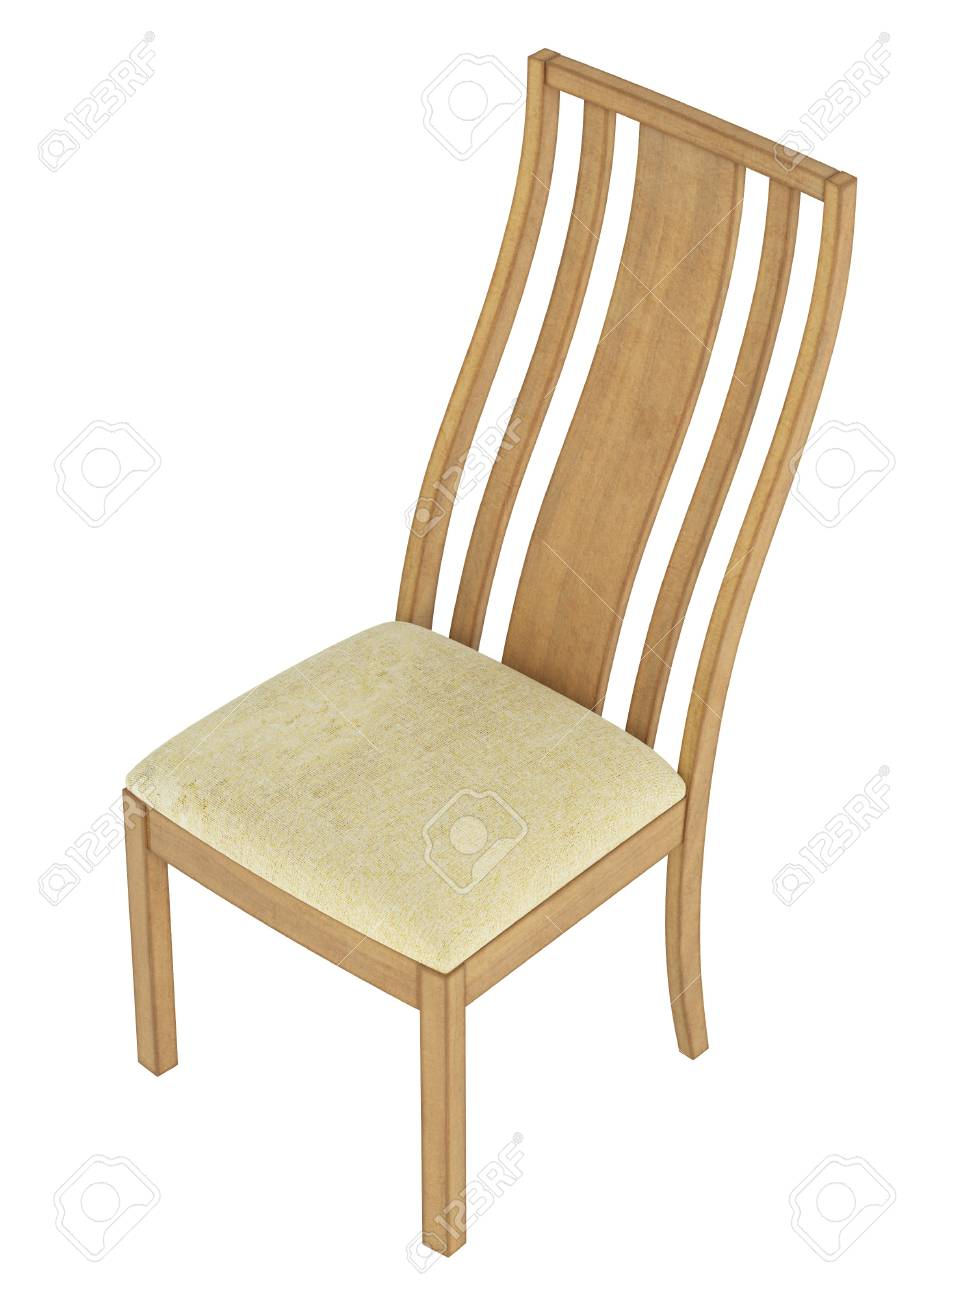 Antique wooden chair isolated on white background Stock Photo - 14256733  sc 1 st  123RF.com & Antique Wooden Chair Isolated On White Background Stock Photo ...